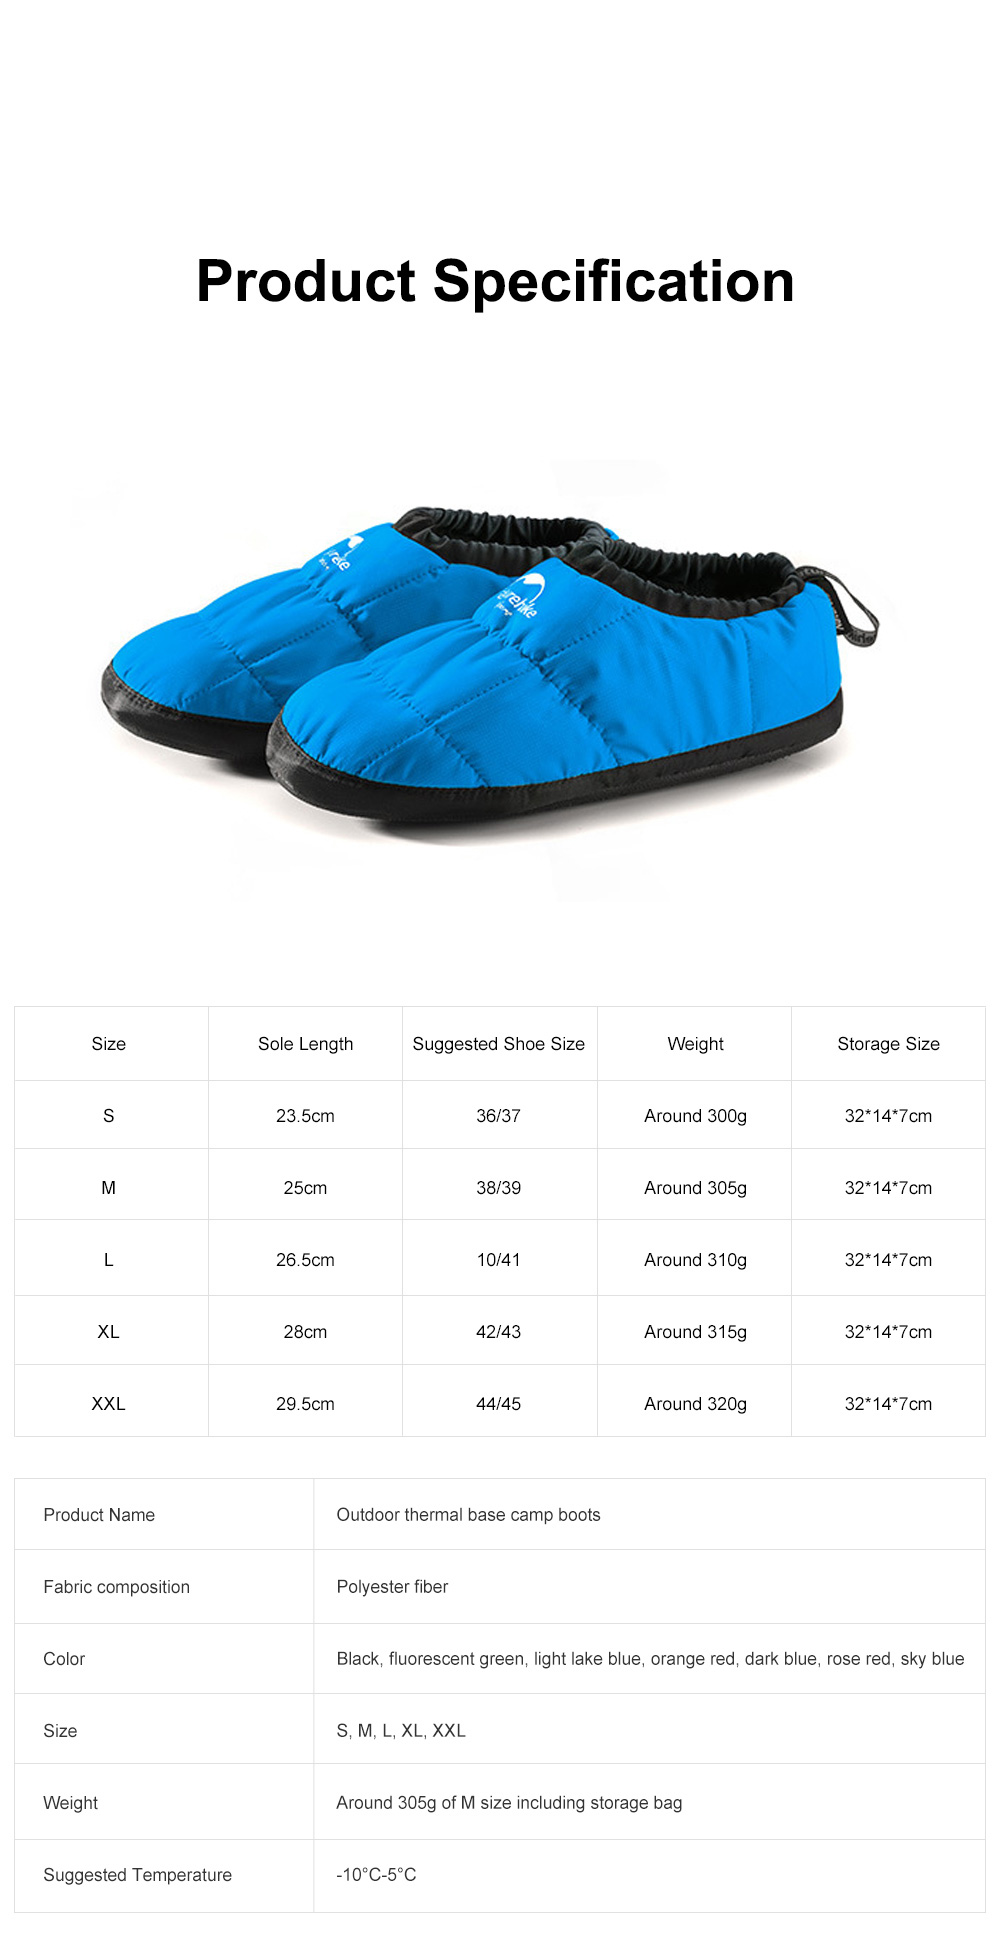 Naturehike Camp Base Boots for Home Outdoors Use Thermal Breathable Camp Shoes Waterproof Lightweight Fabric Camp Shoes 6